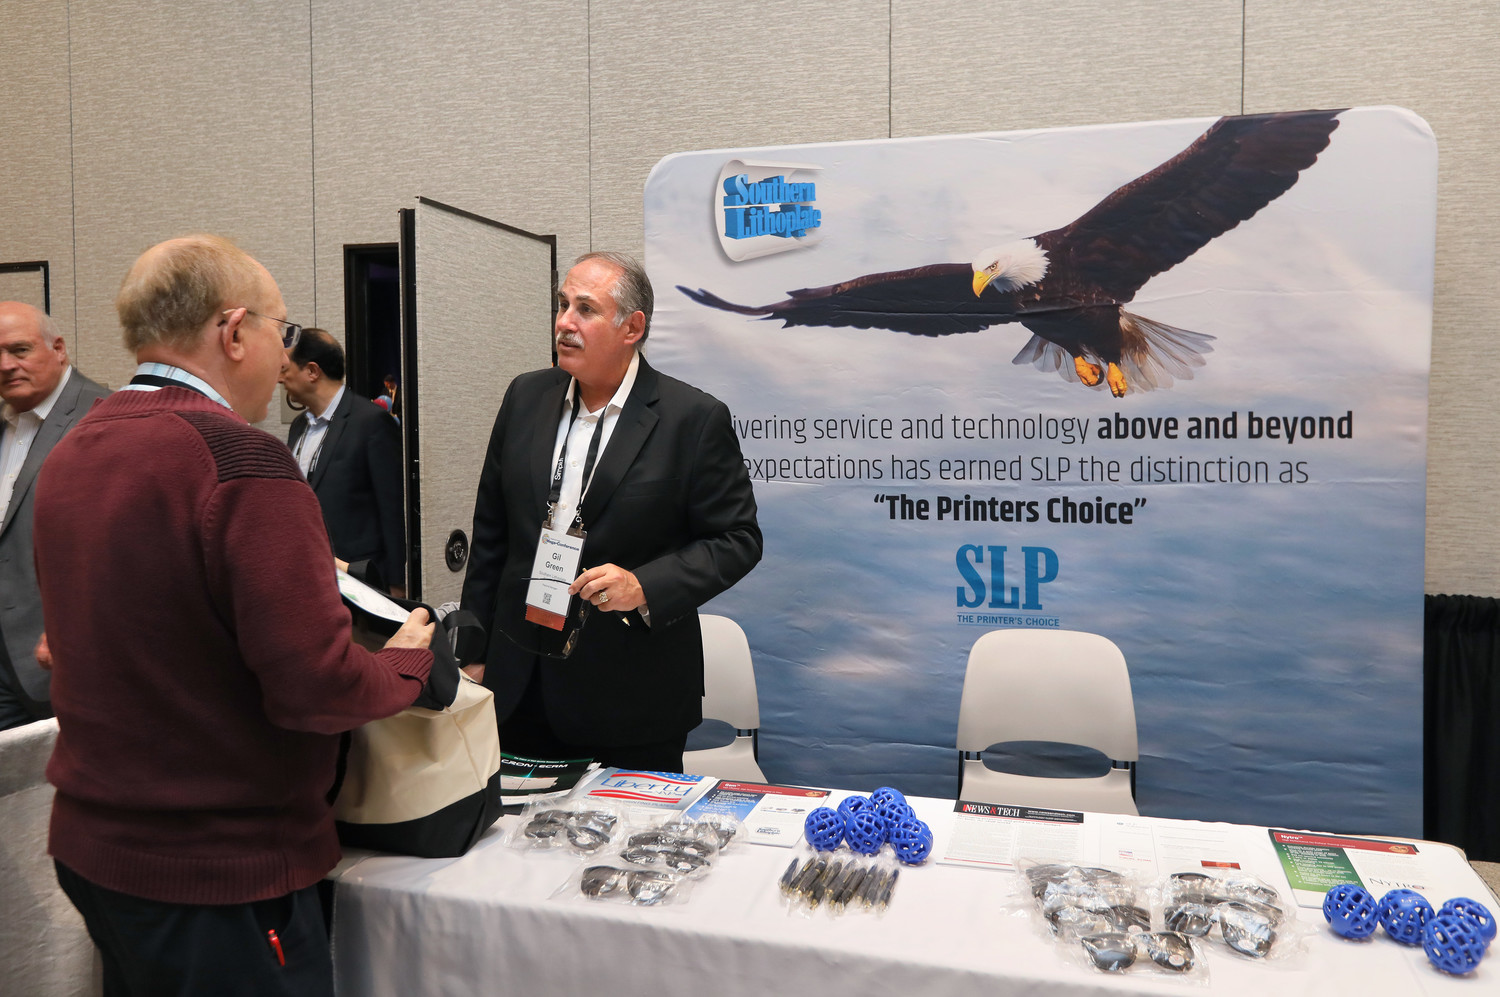 Gil Green, regional manager for Southern Lithoplate, talks with a Mega-Conference attendee in the Exhibit Hall. The 2018 Mega-Conference attracted a record number of vendors.